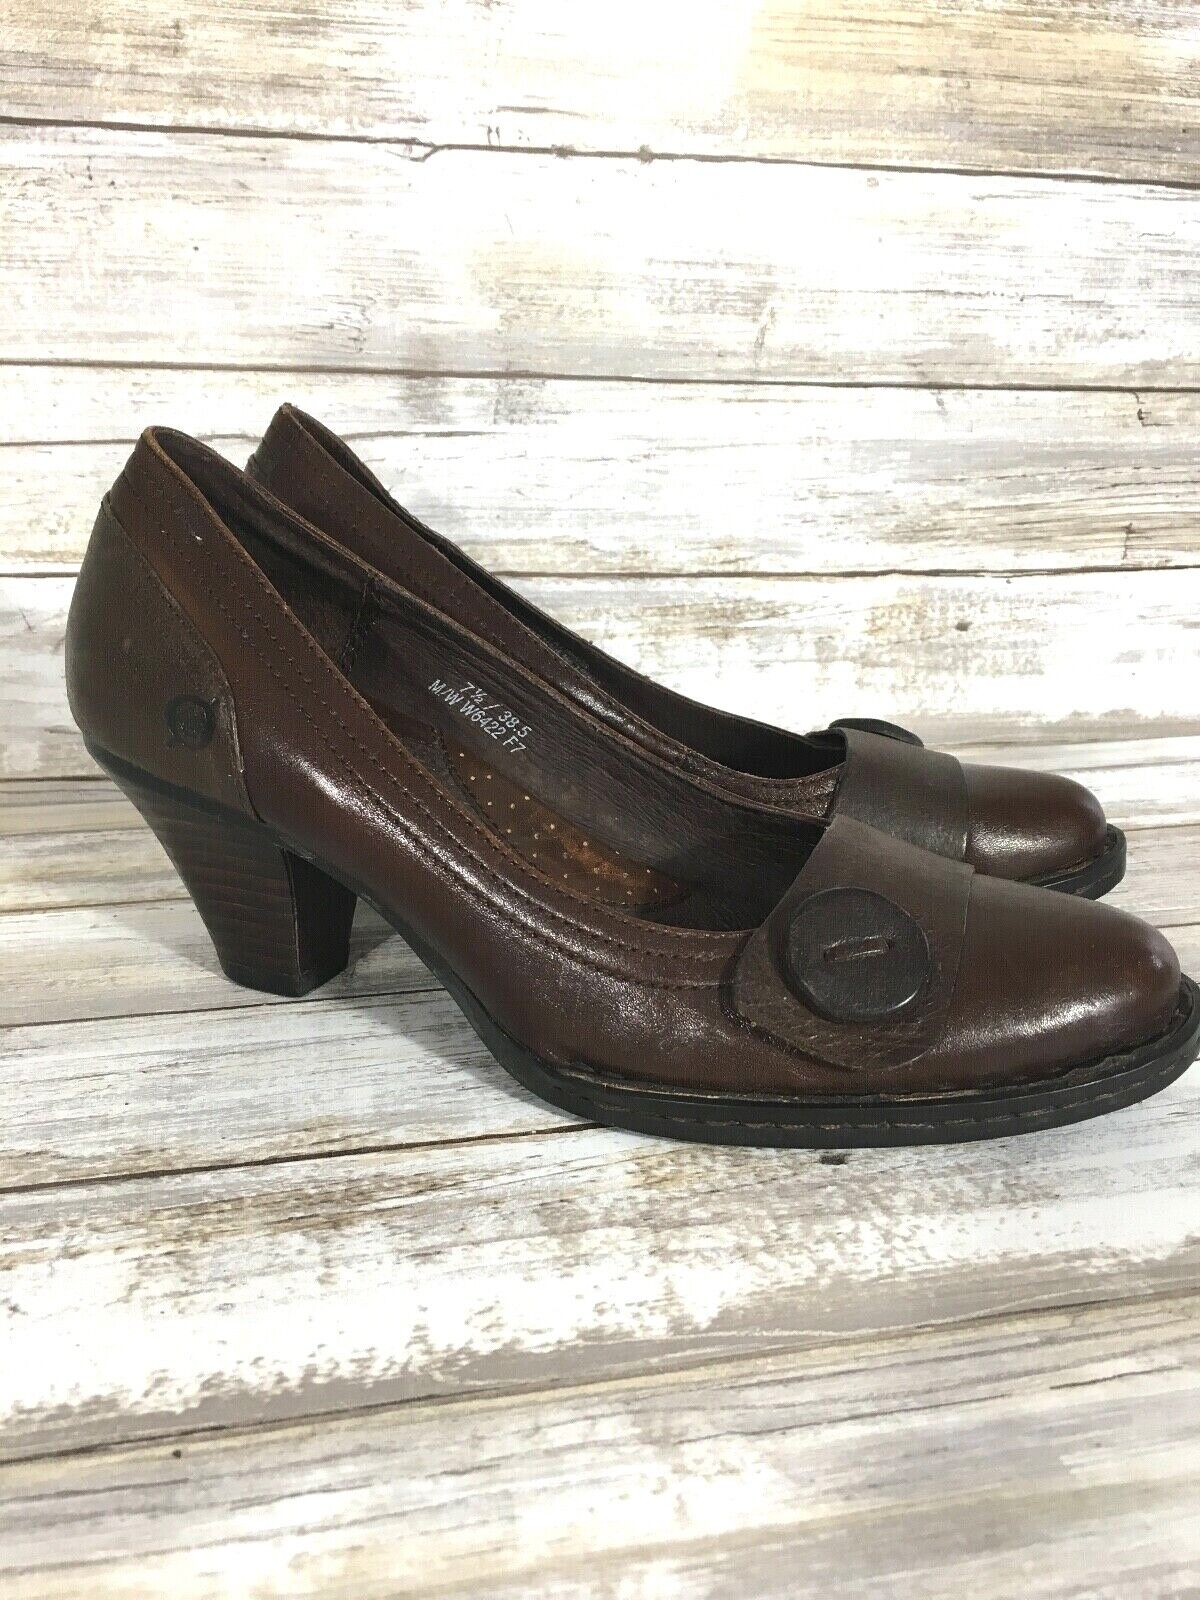 Women's Born Brown Leather Pumps Mid Heels shoes 7.5